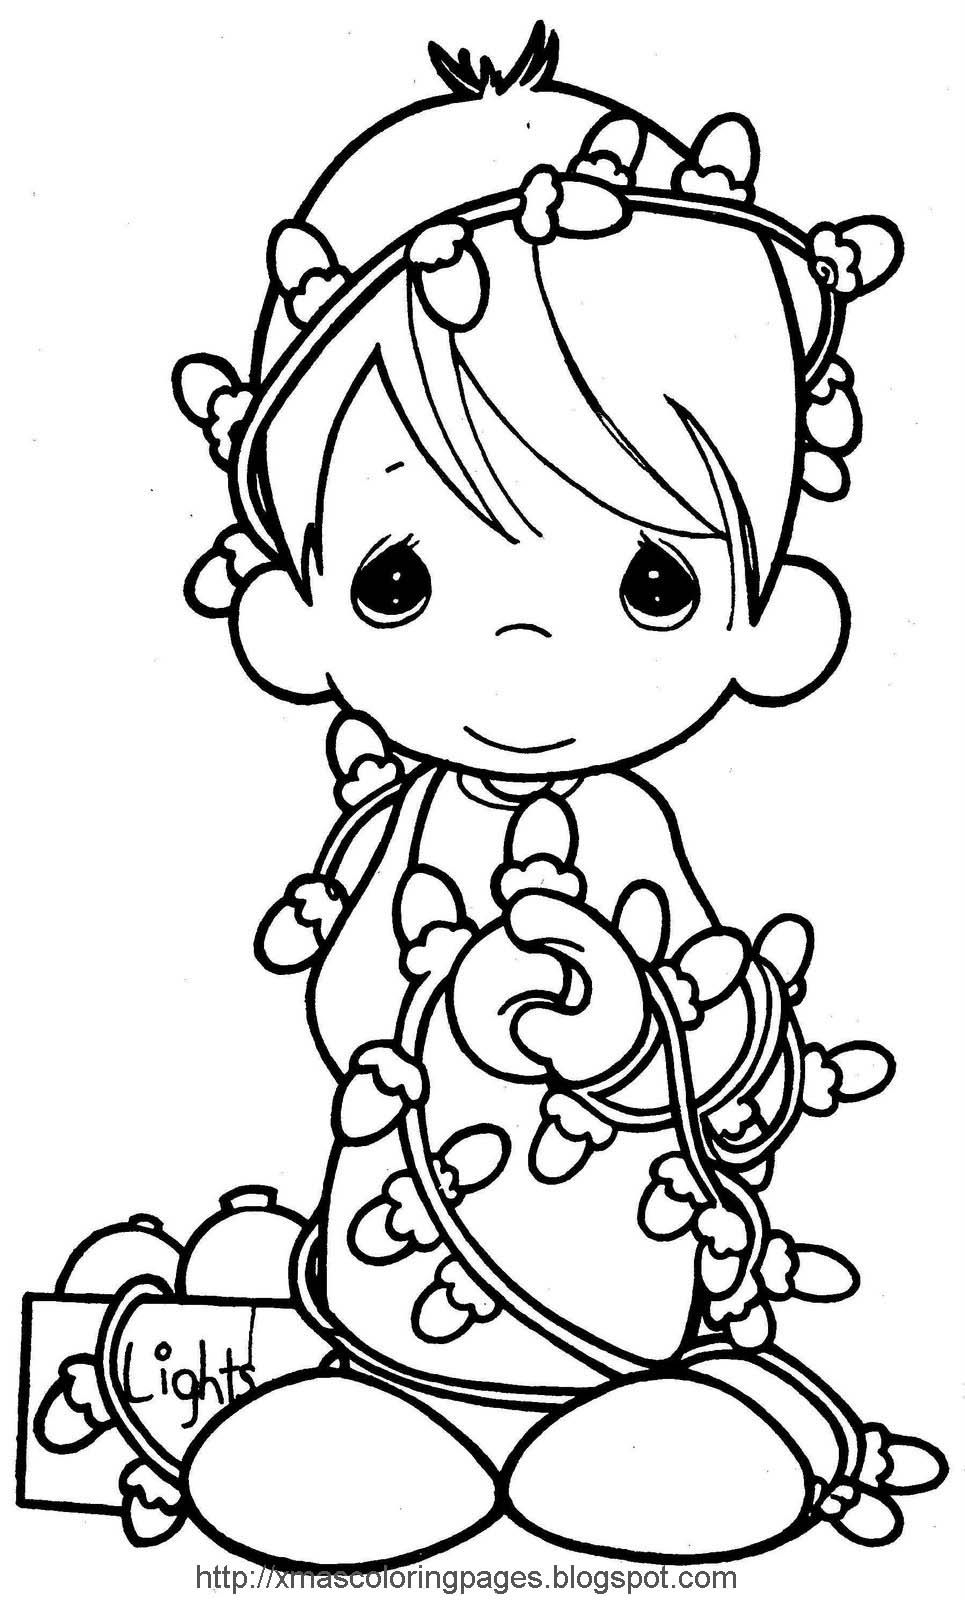 Xmas Coloring Pics With XMAS COLORING PAGES ANGEL PAGE Color Sheets Pinterest